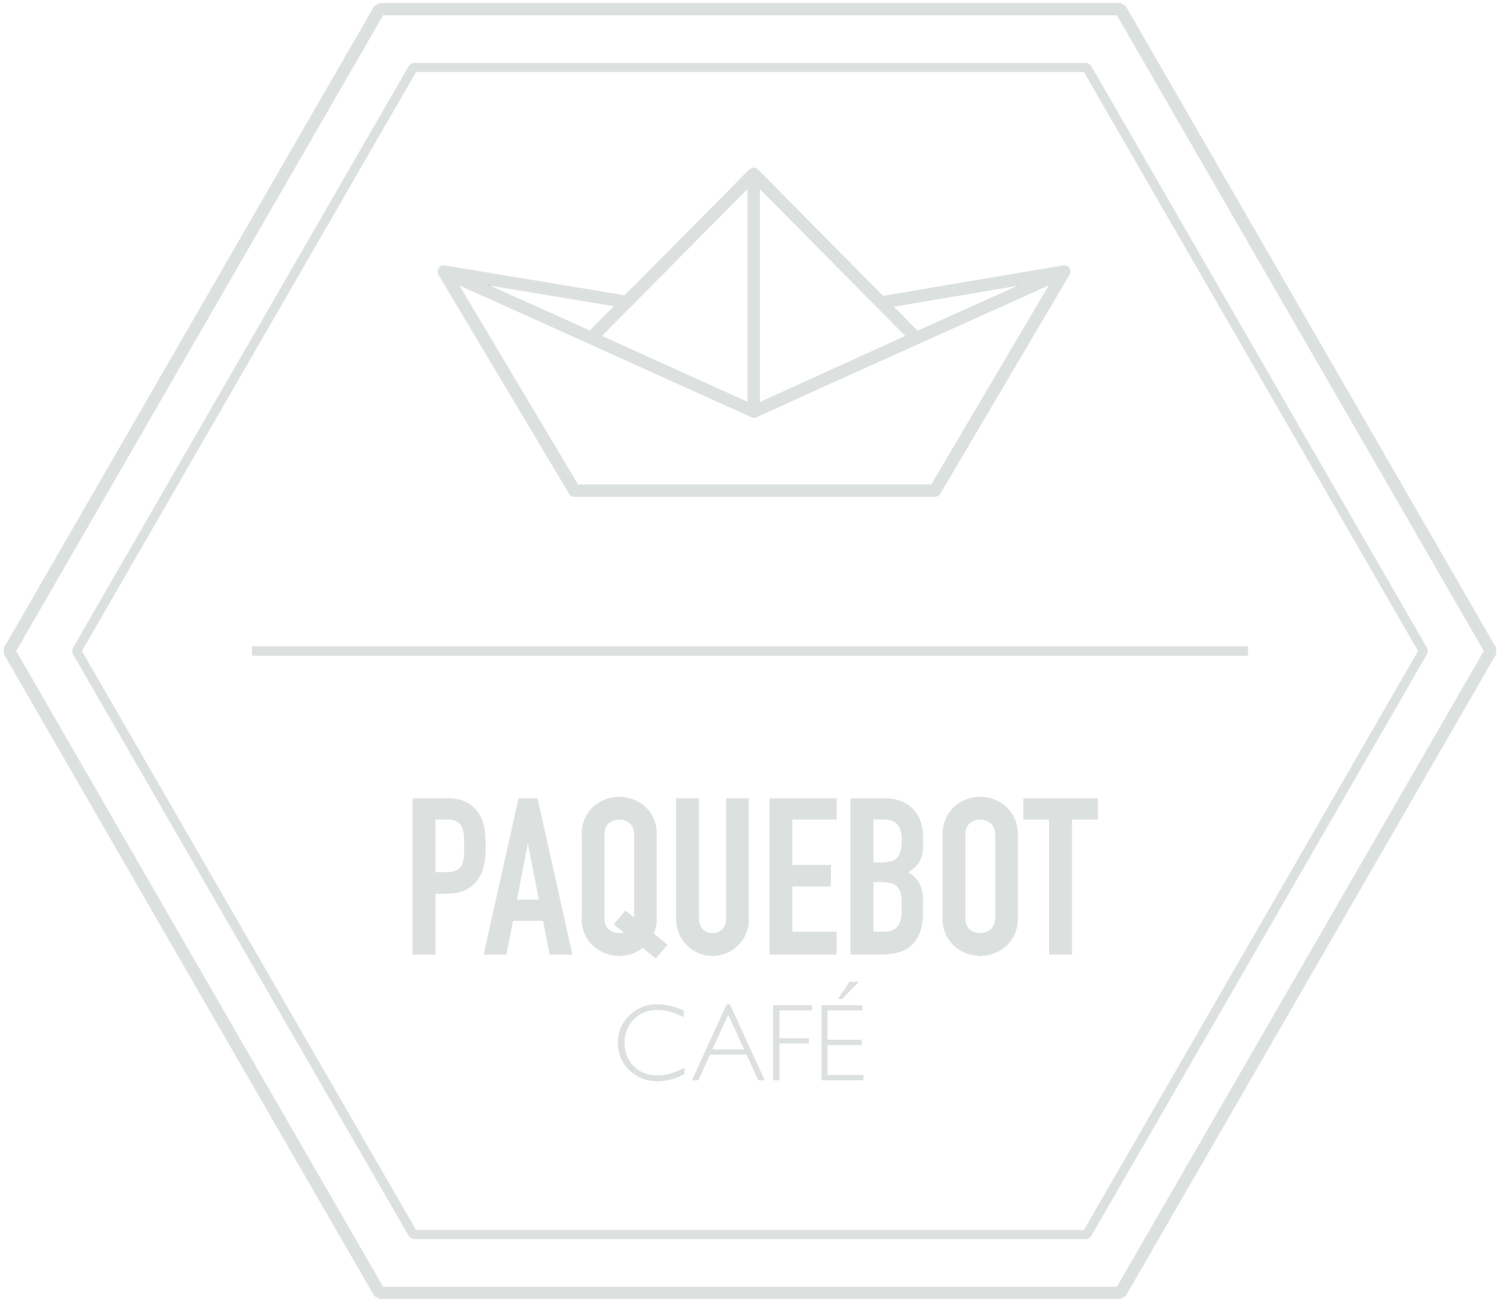 Paquebot Café - Paquebot Coffee Shop